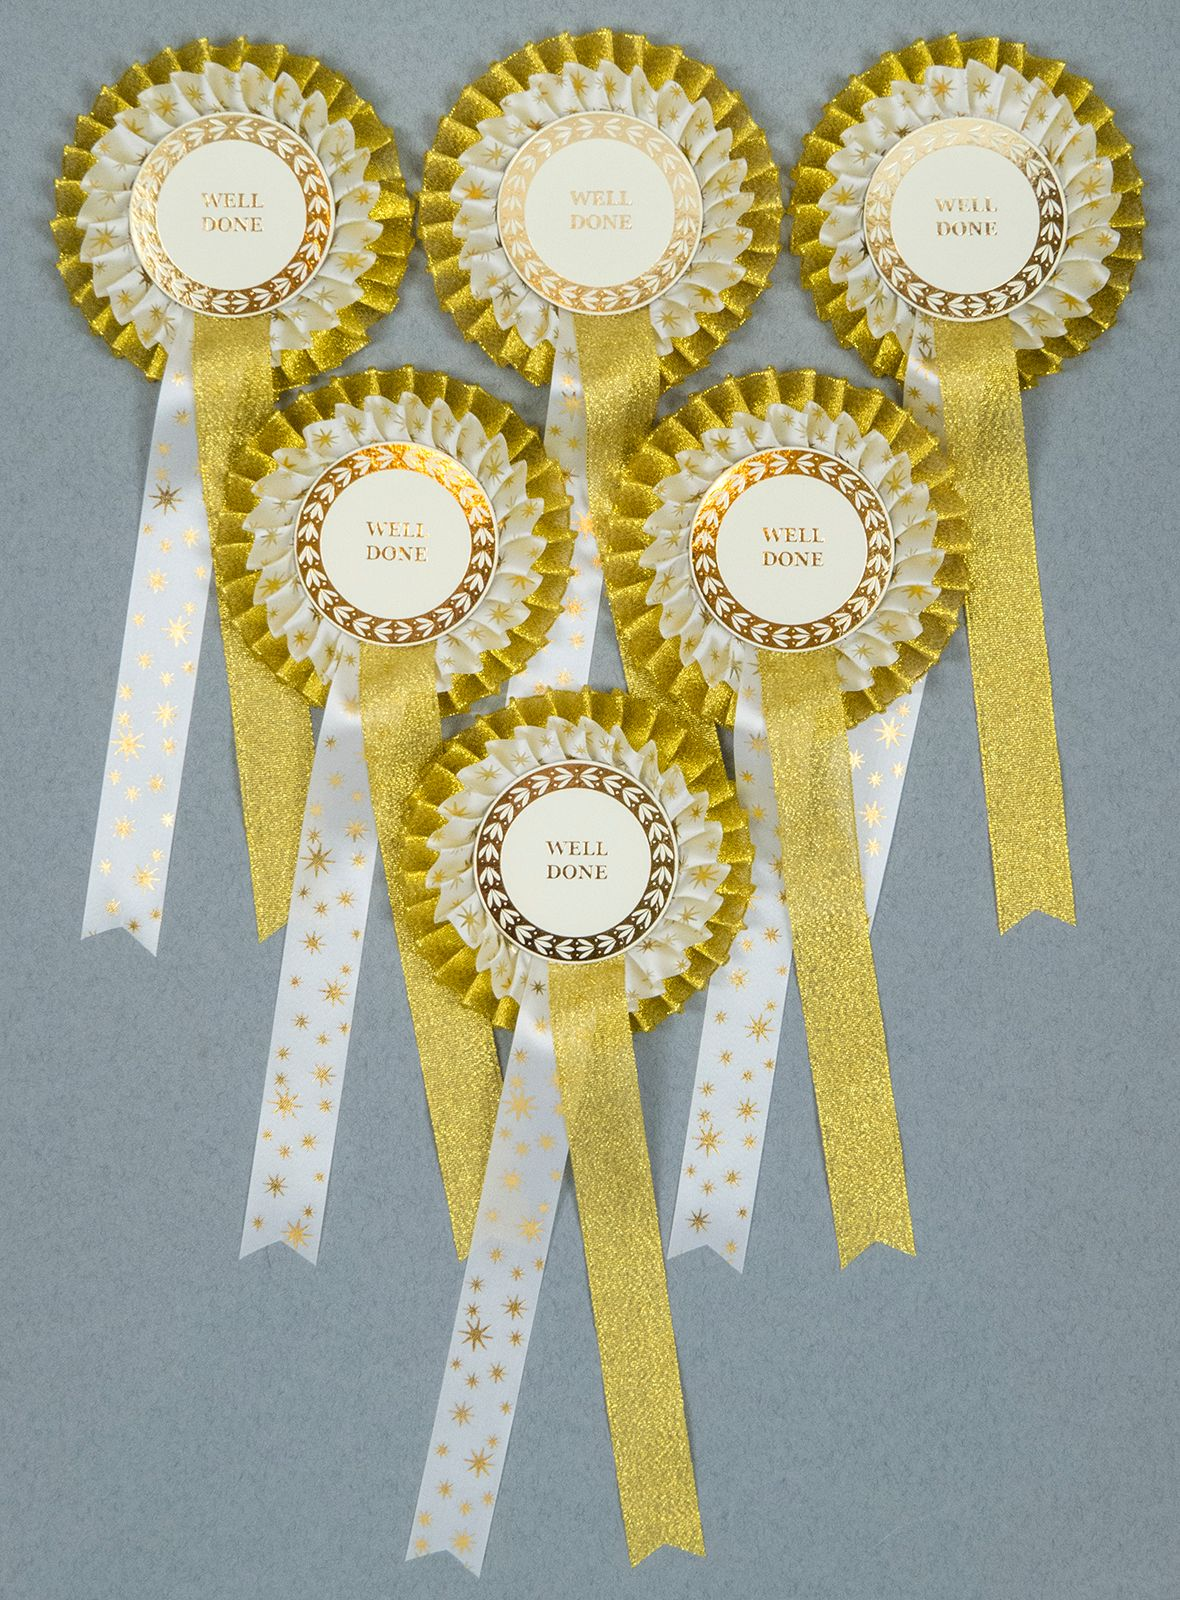 Gold Spangle Star 2-Tier Rosettes, Set x 6 Special, Well Done or CR